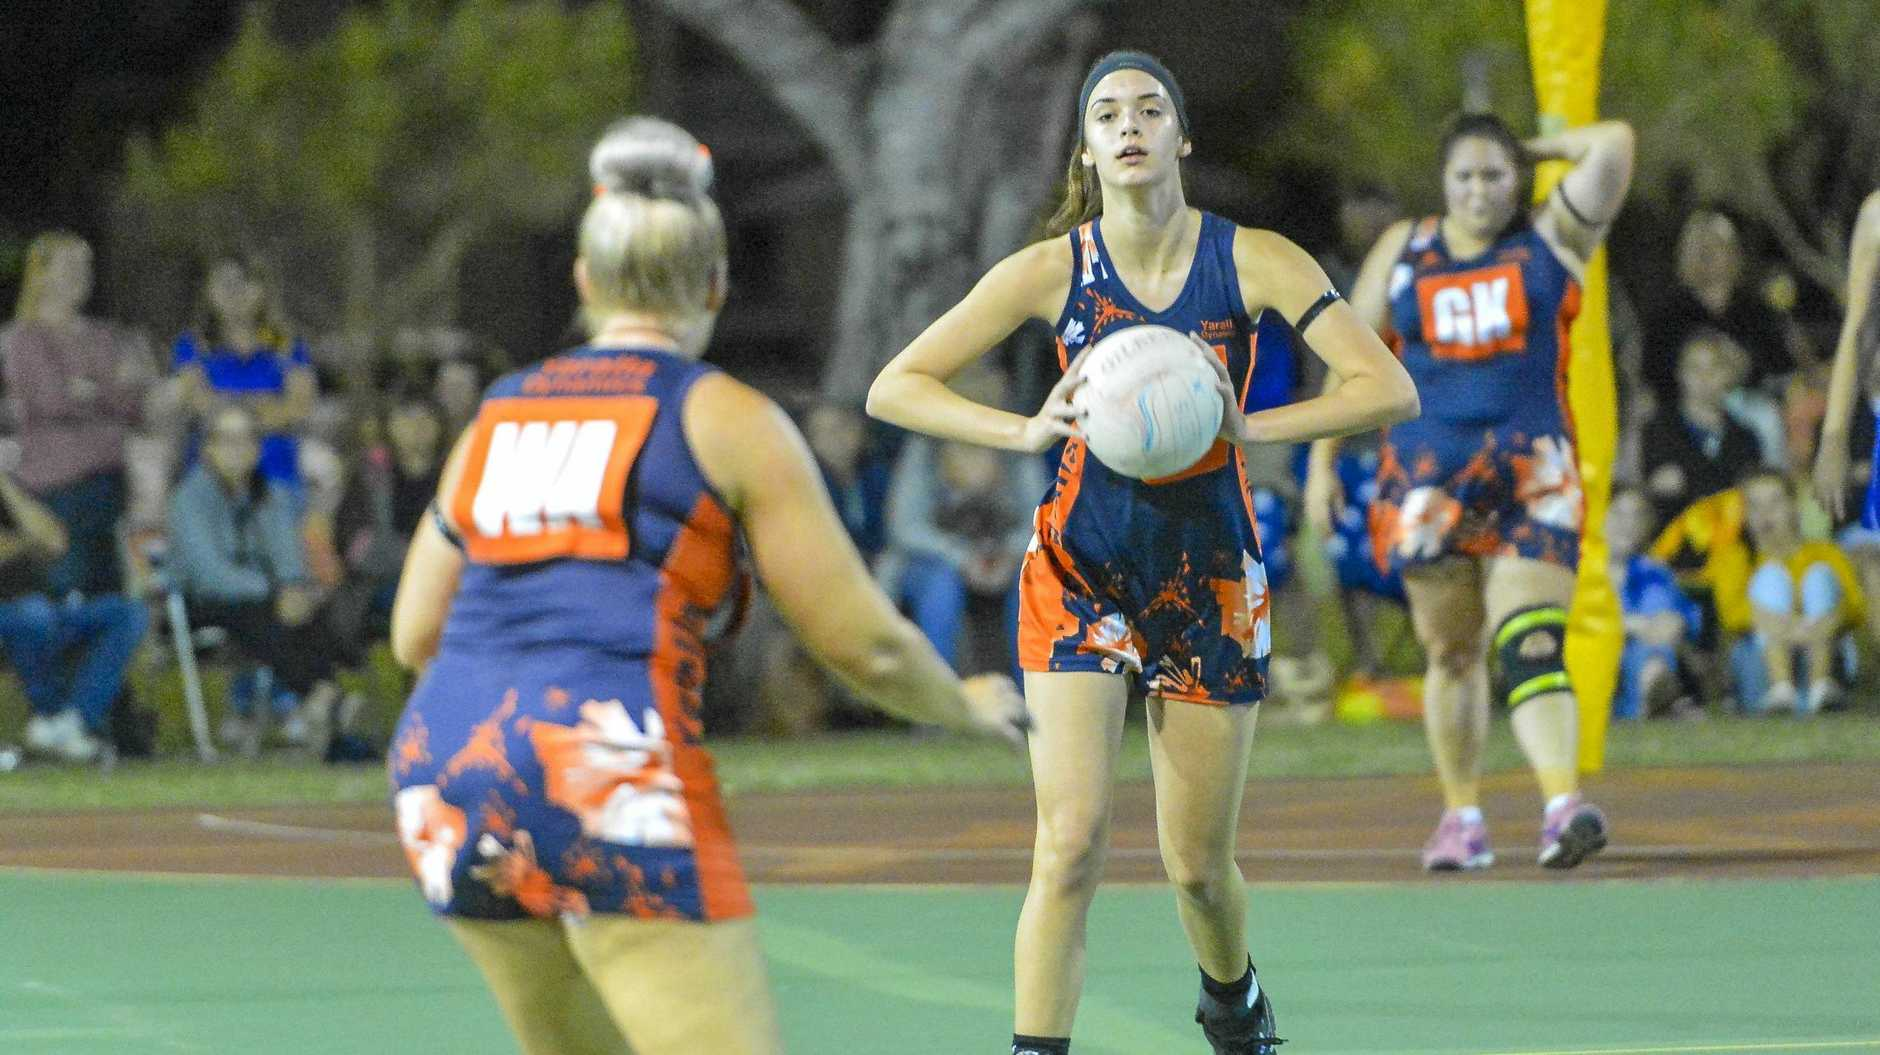 Yaralla Falcons' Abbi Cooper about to pass in last year's grand final. Falcons is one of several Gladstone clubs that can enter the 2019 Australia Post One Netball Community Awards.